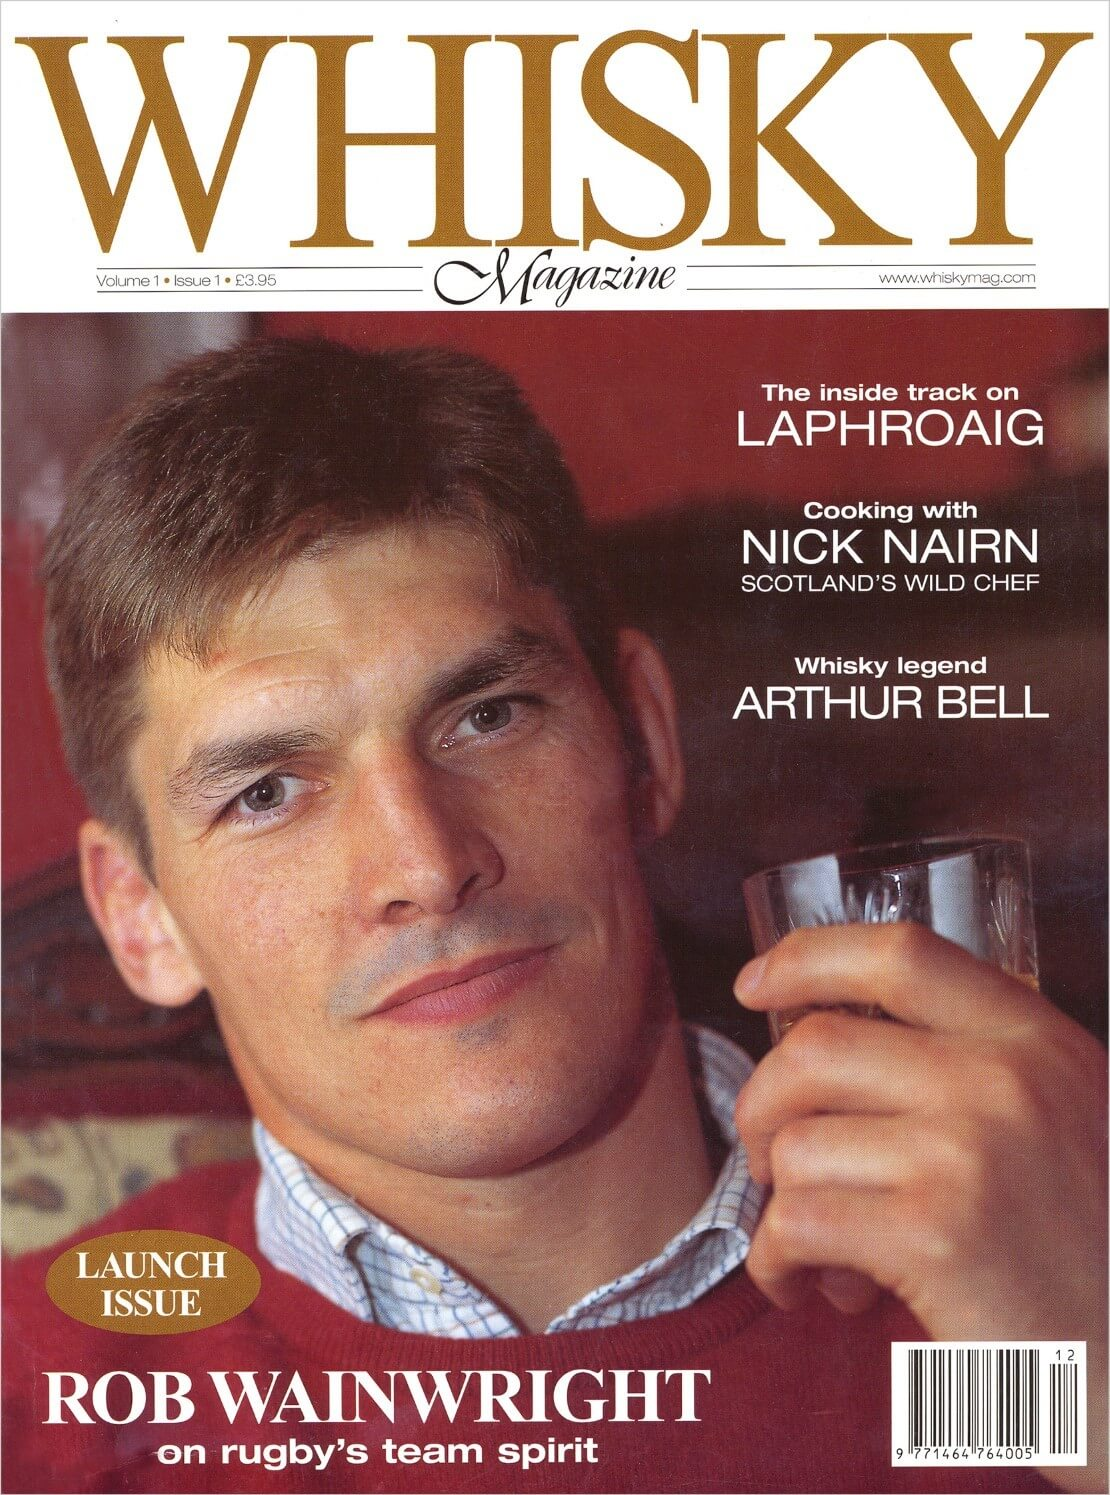 Whisky hero Arthur Bell Laphroaig Cooking with Nick Nairn